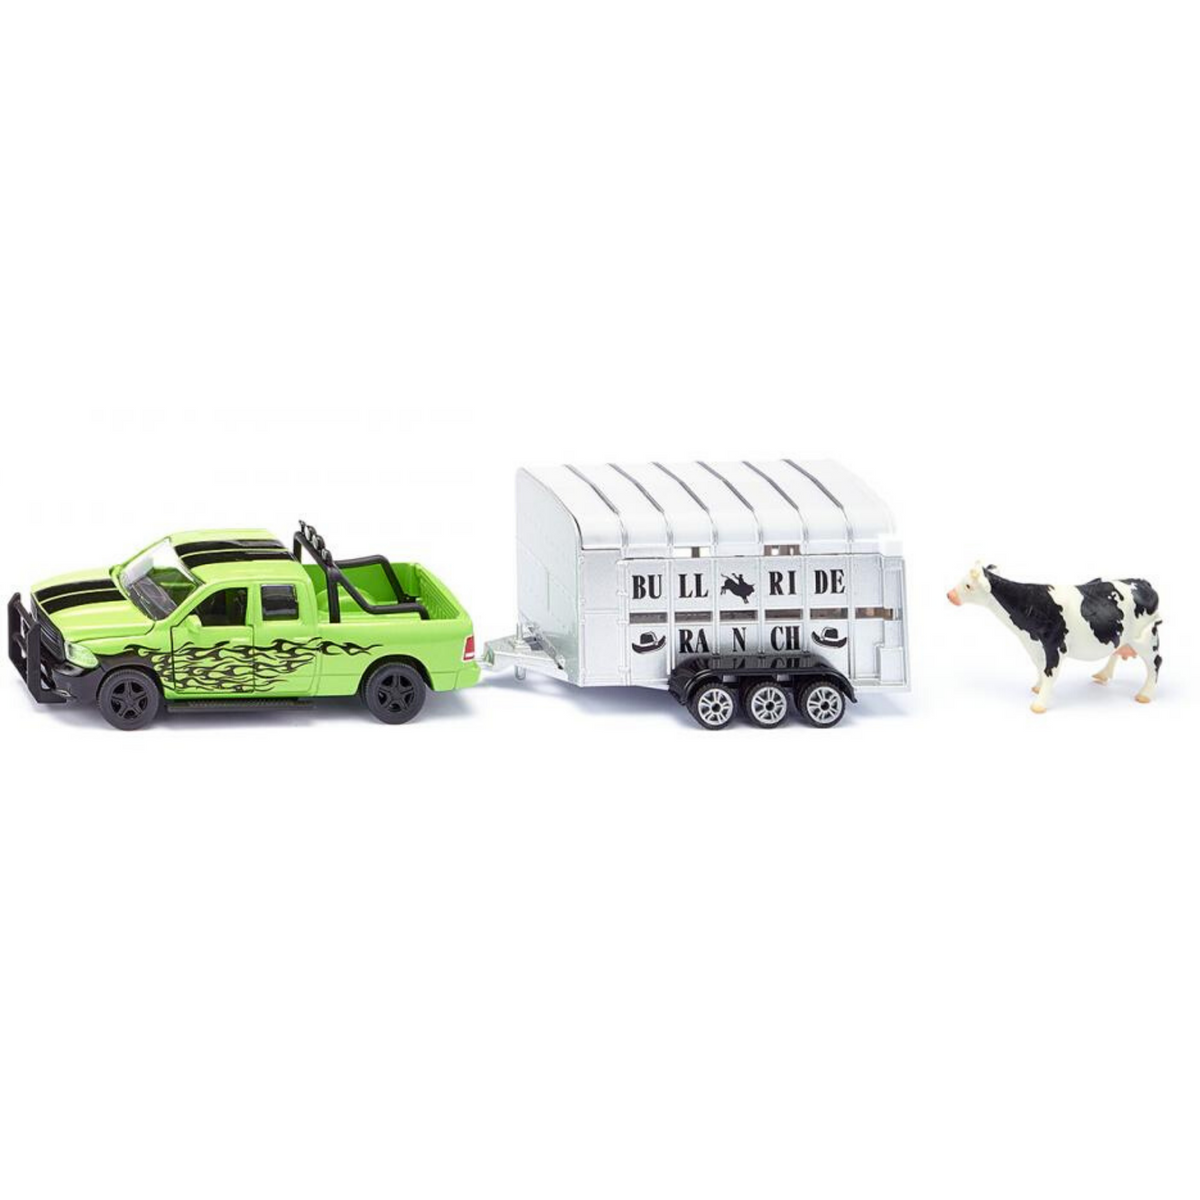 RAM 1500 with livestock trailer Nr. 1998, 1:50